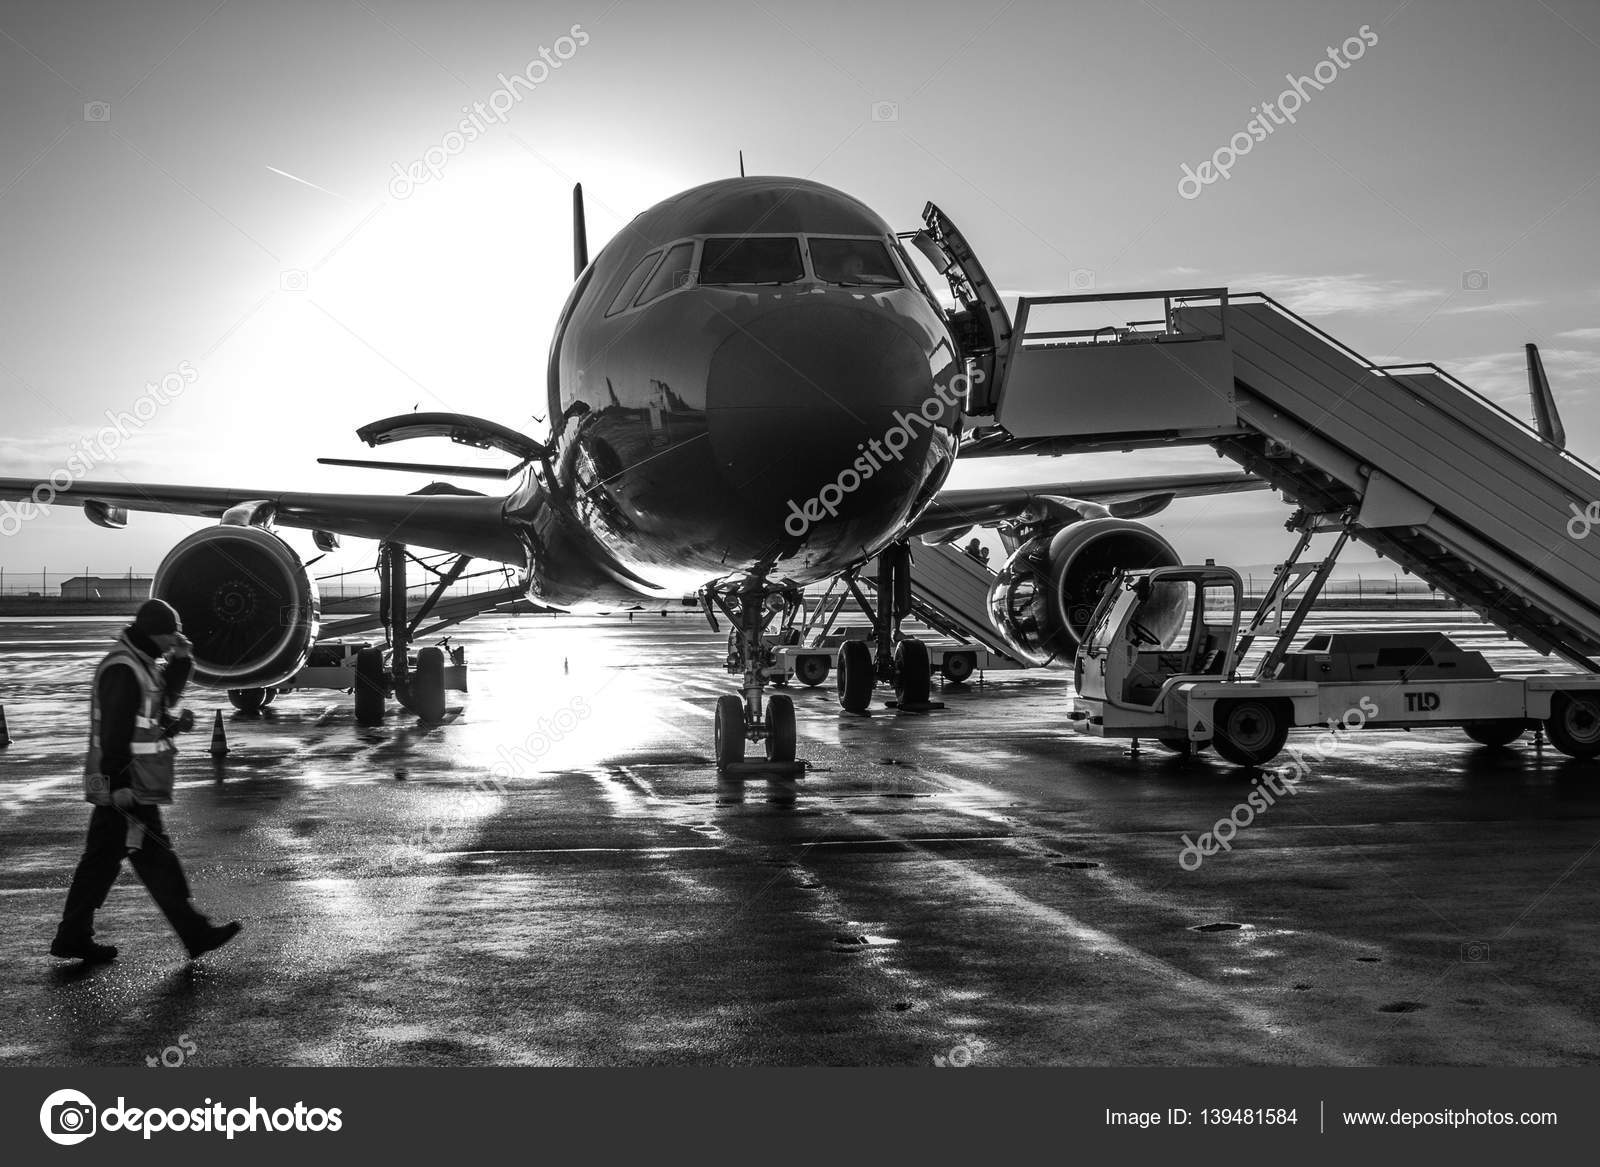 the plane, Wizzair – Stock Editorial Photo